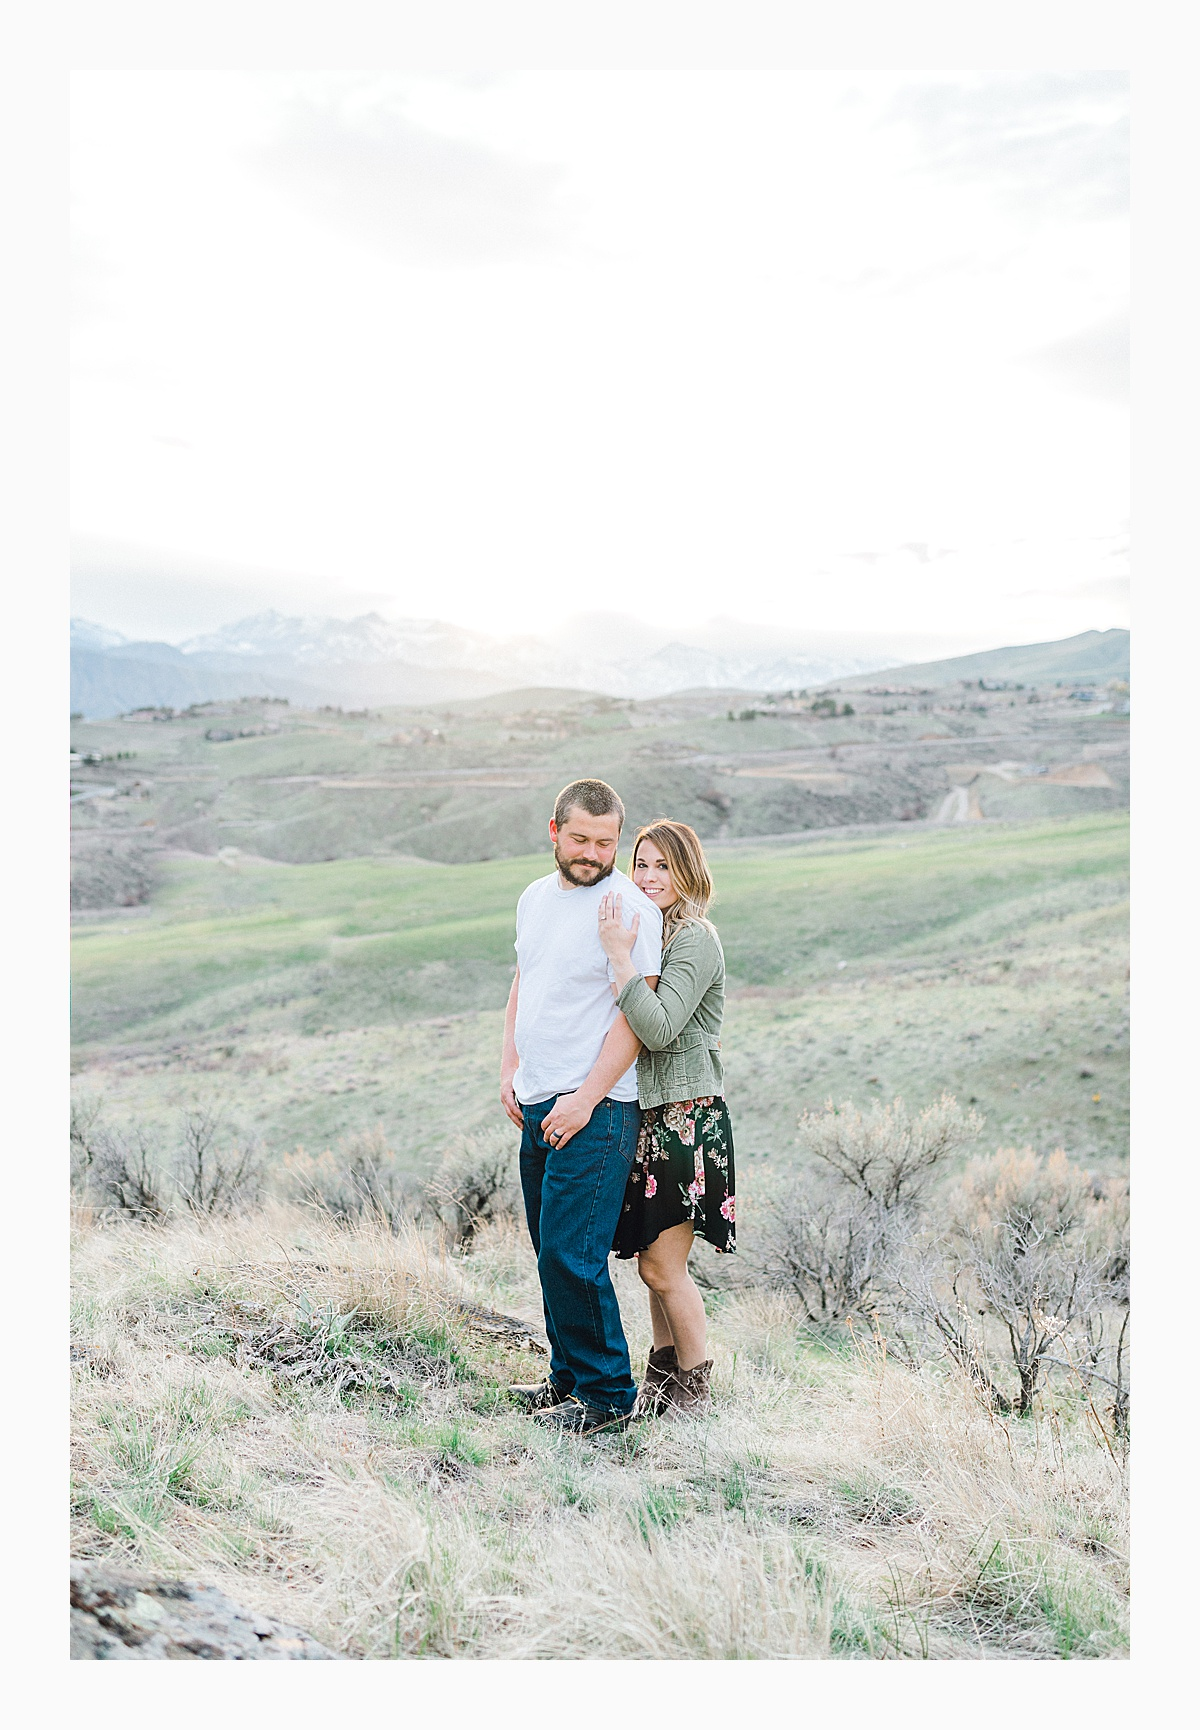 Pacific Northwest Engagement Session in the Sagebrush with Emma Rose Company who is a light and airy wedding photographer based in Seattle, Washington_0028.jpg